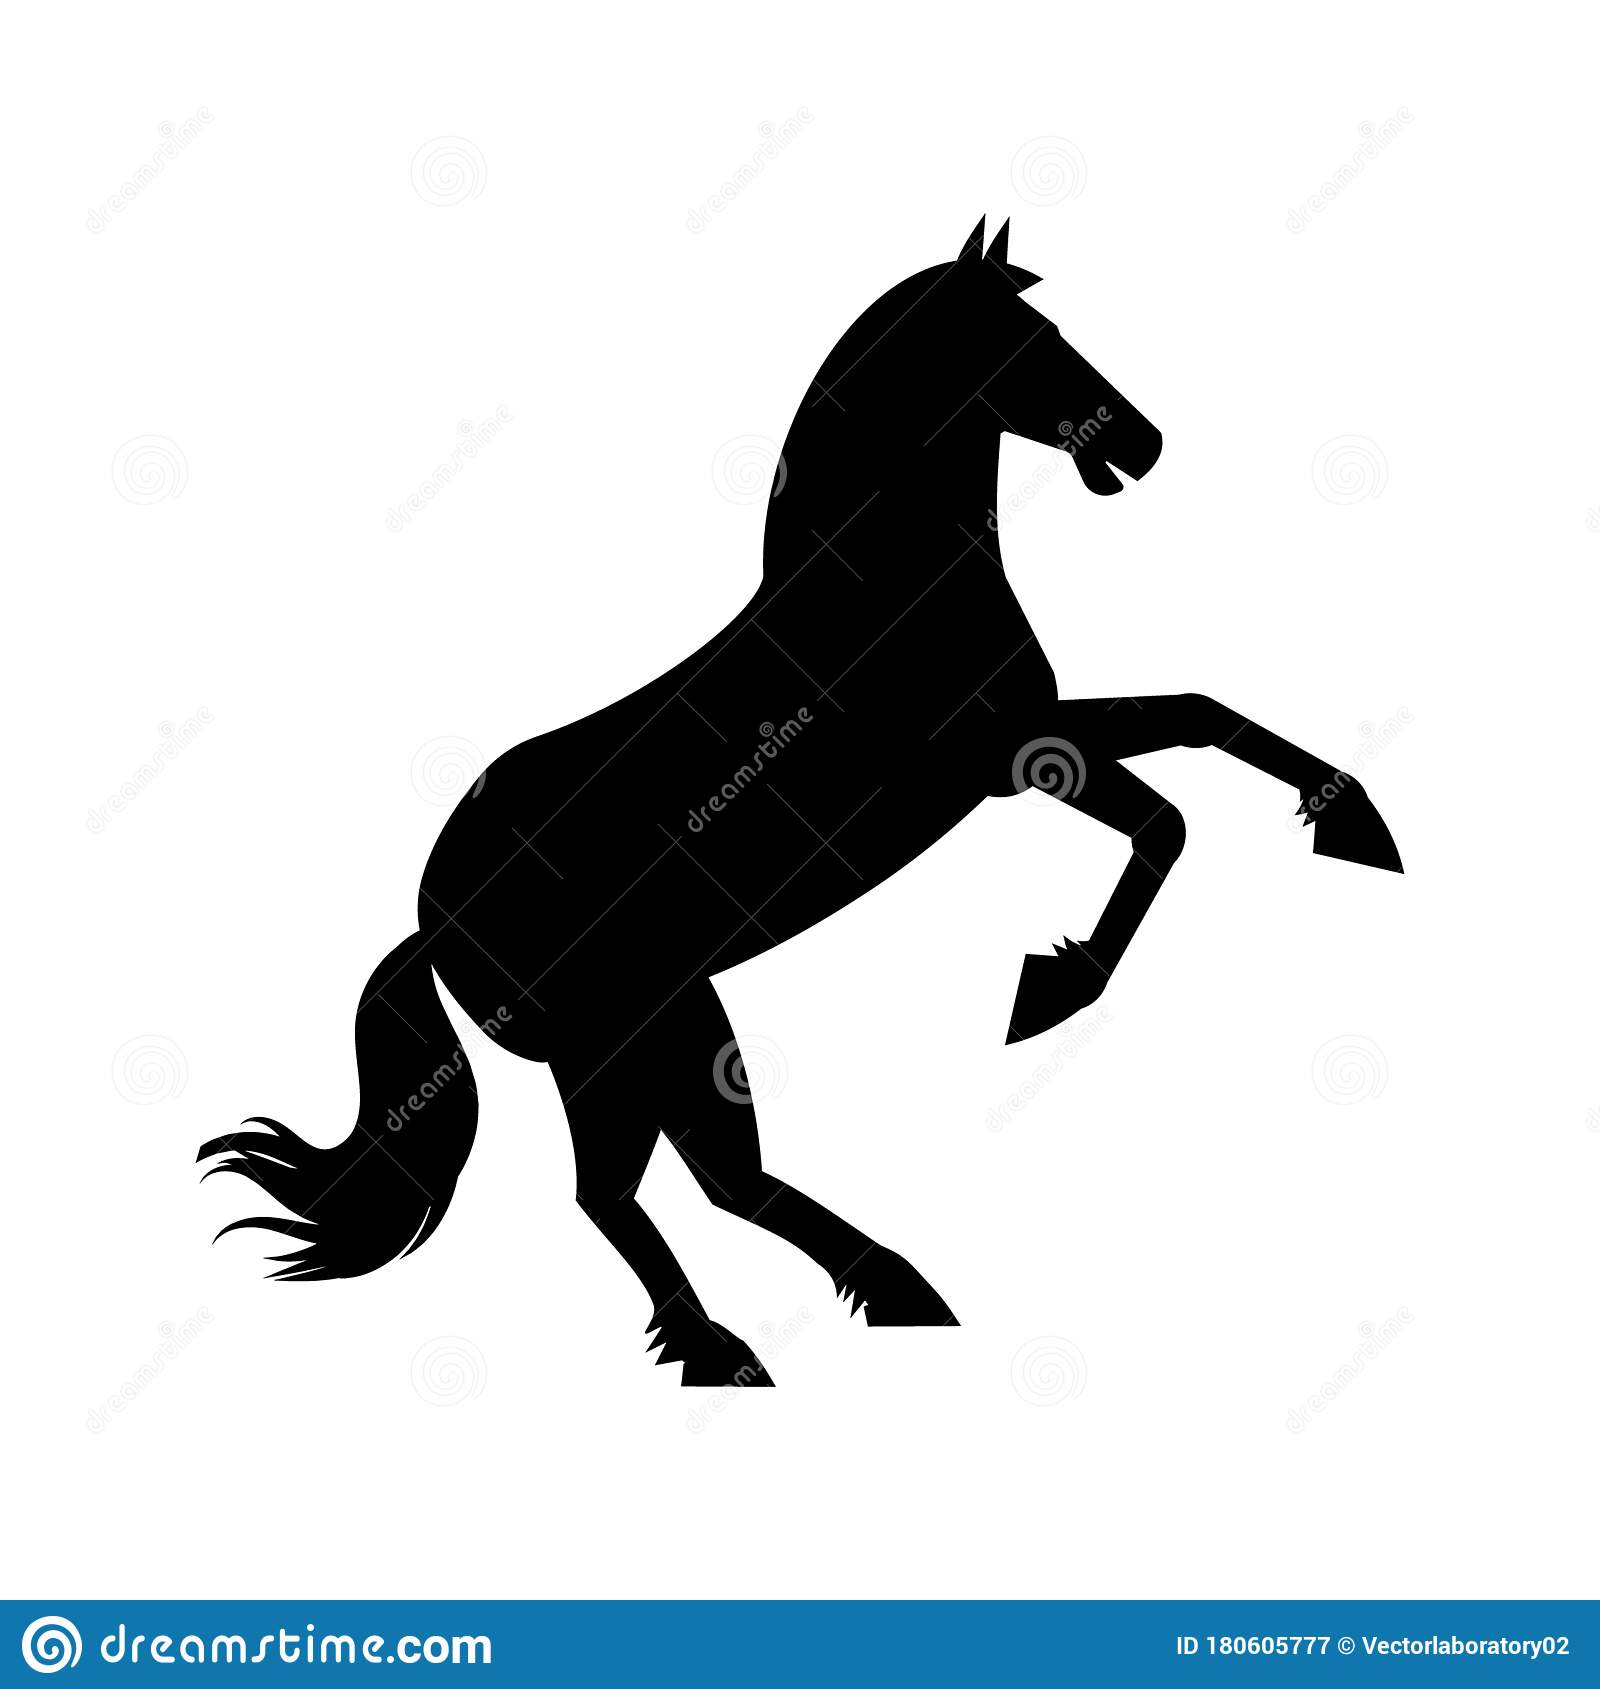 Black Silhouette Of Rearing Horse On White Background Wild Horse Animal Trendy Flat Style For Graphic Design Web Site Stock Vector Illustration Of Icon Element 180605777